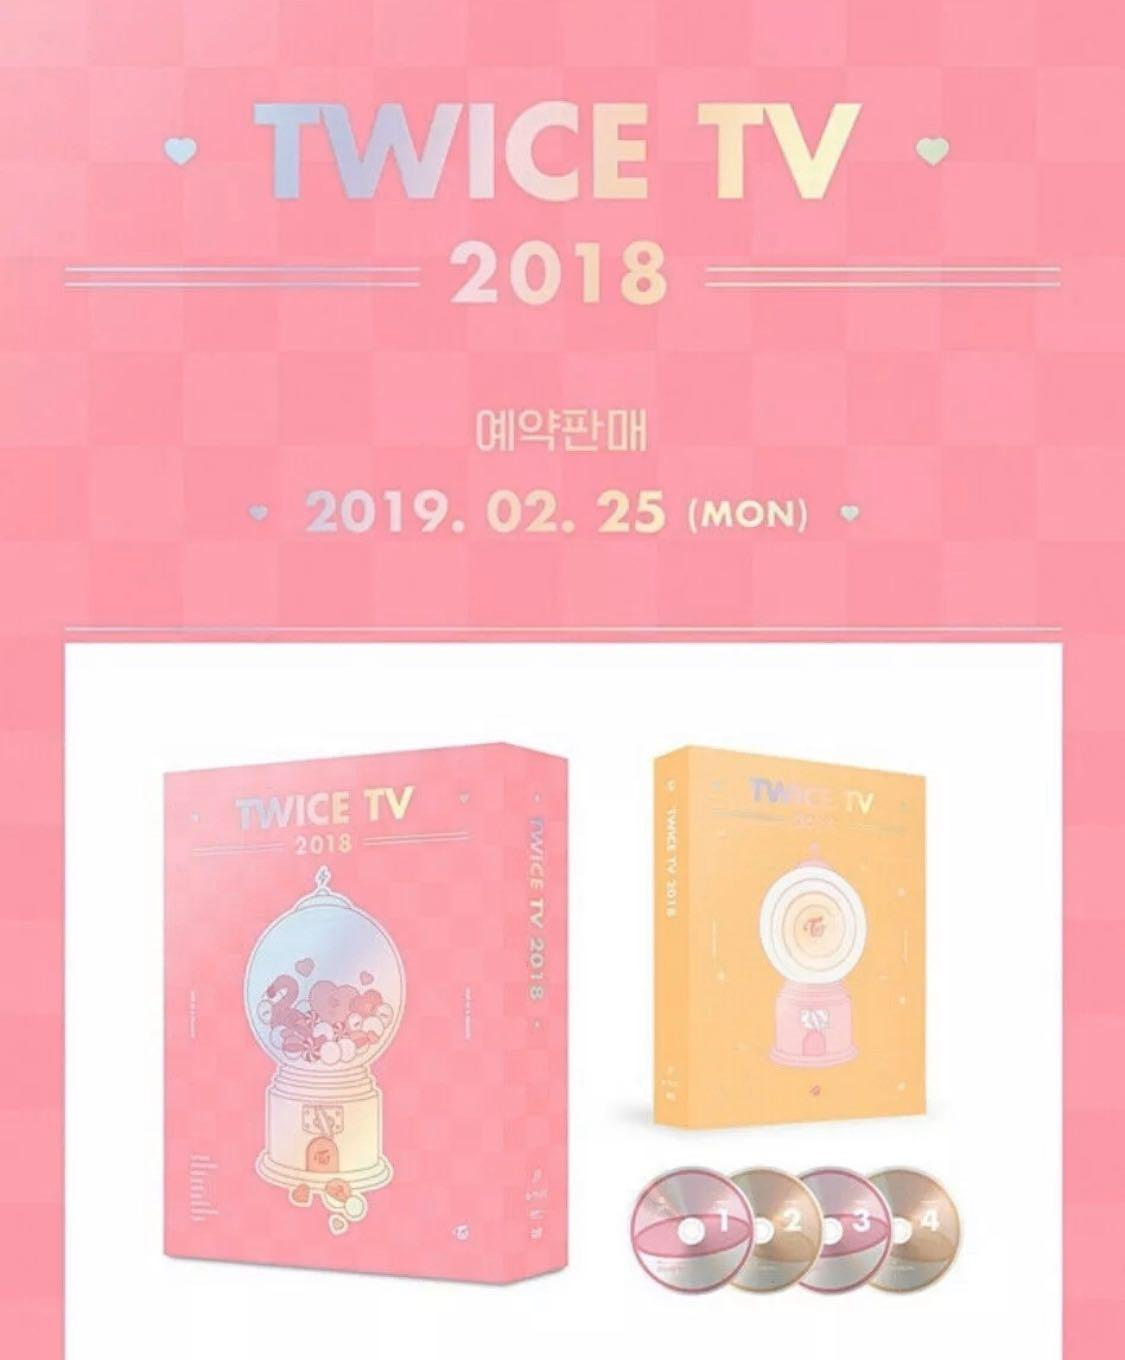 ✨TWICE✨ TV 2018 DVD ALBUM -Brand New Unsealed 4 DISCS DVD + OUTBOX